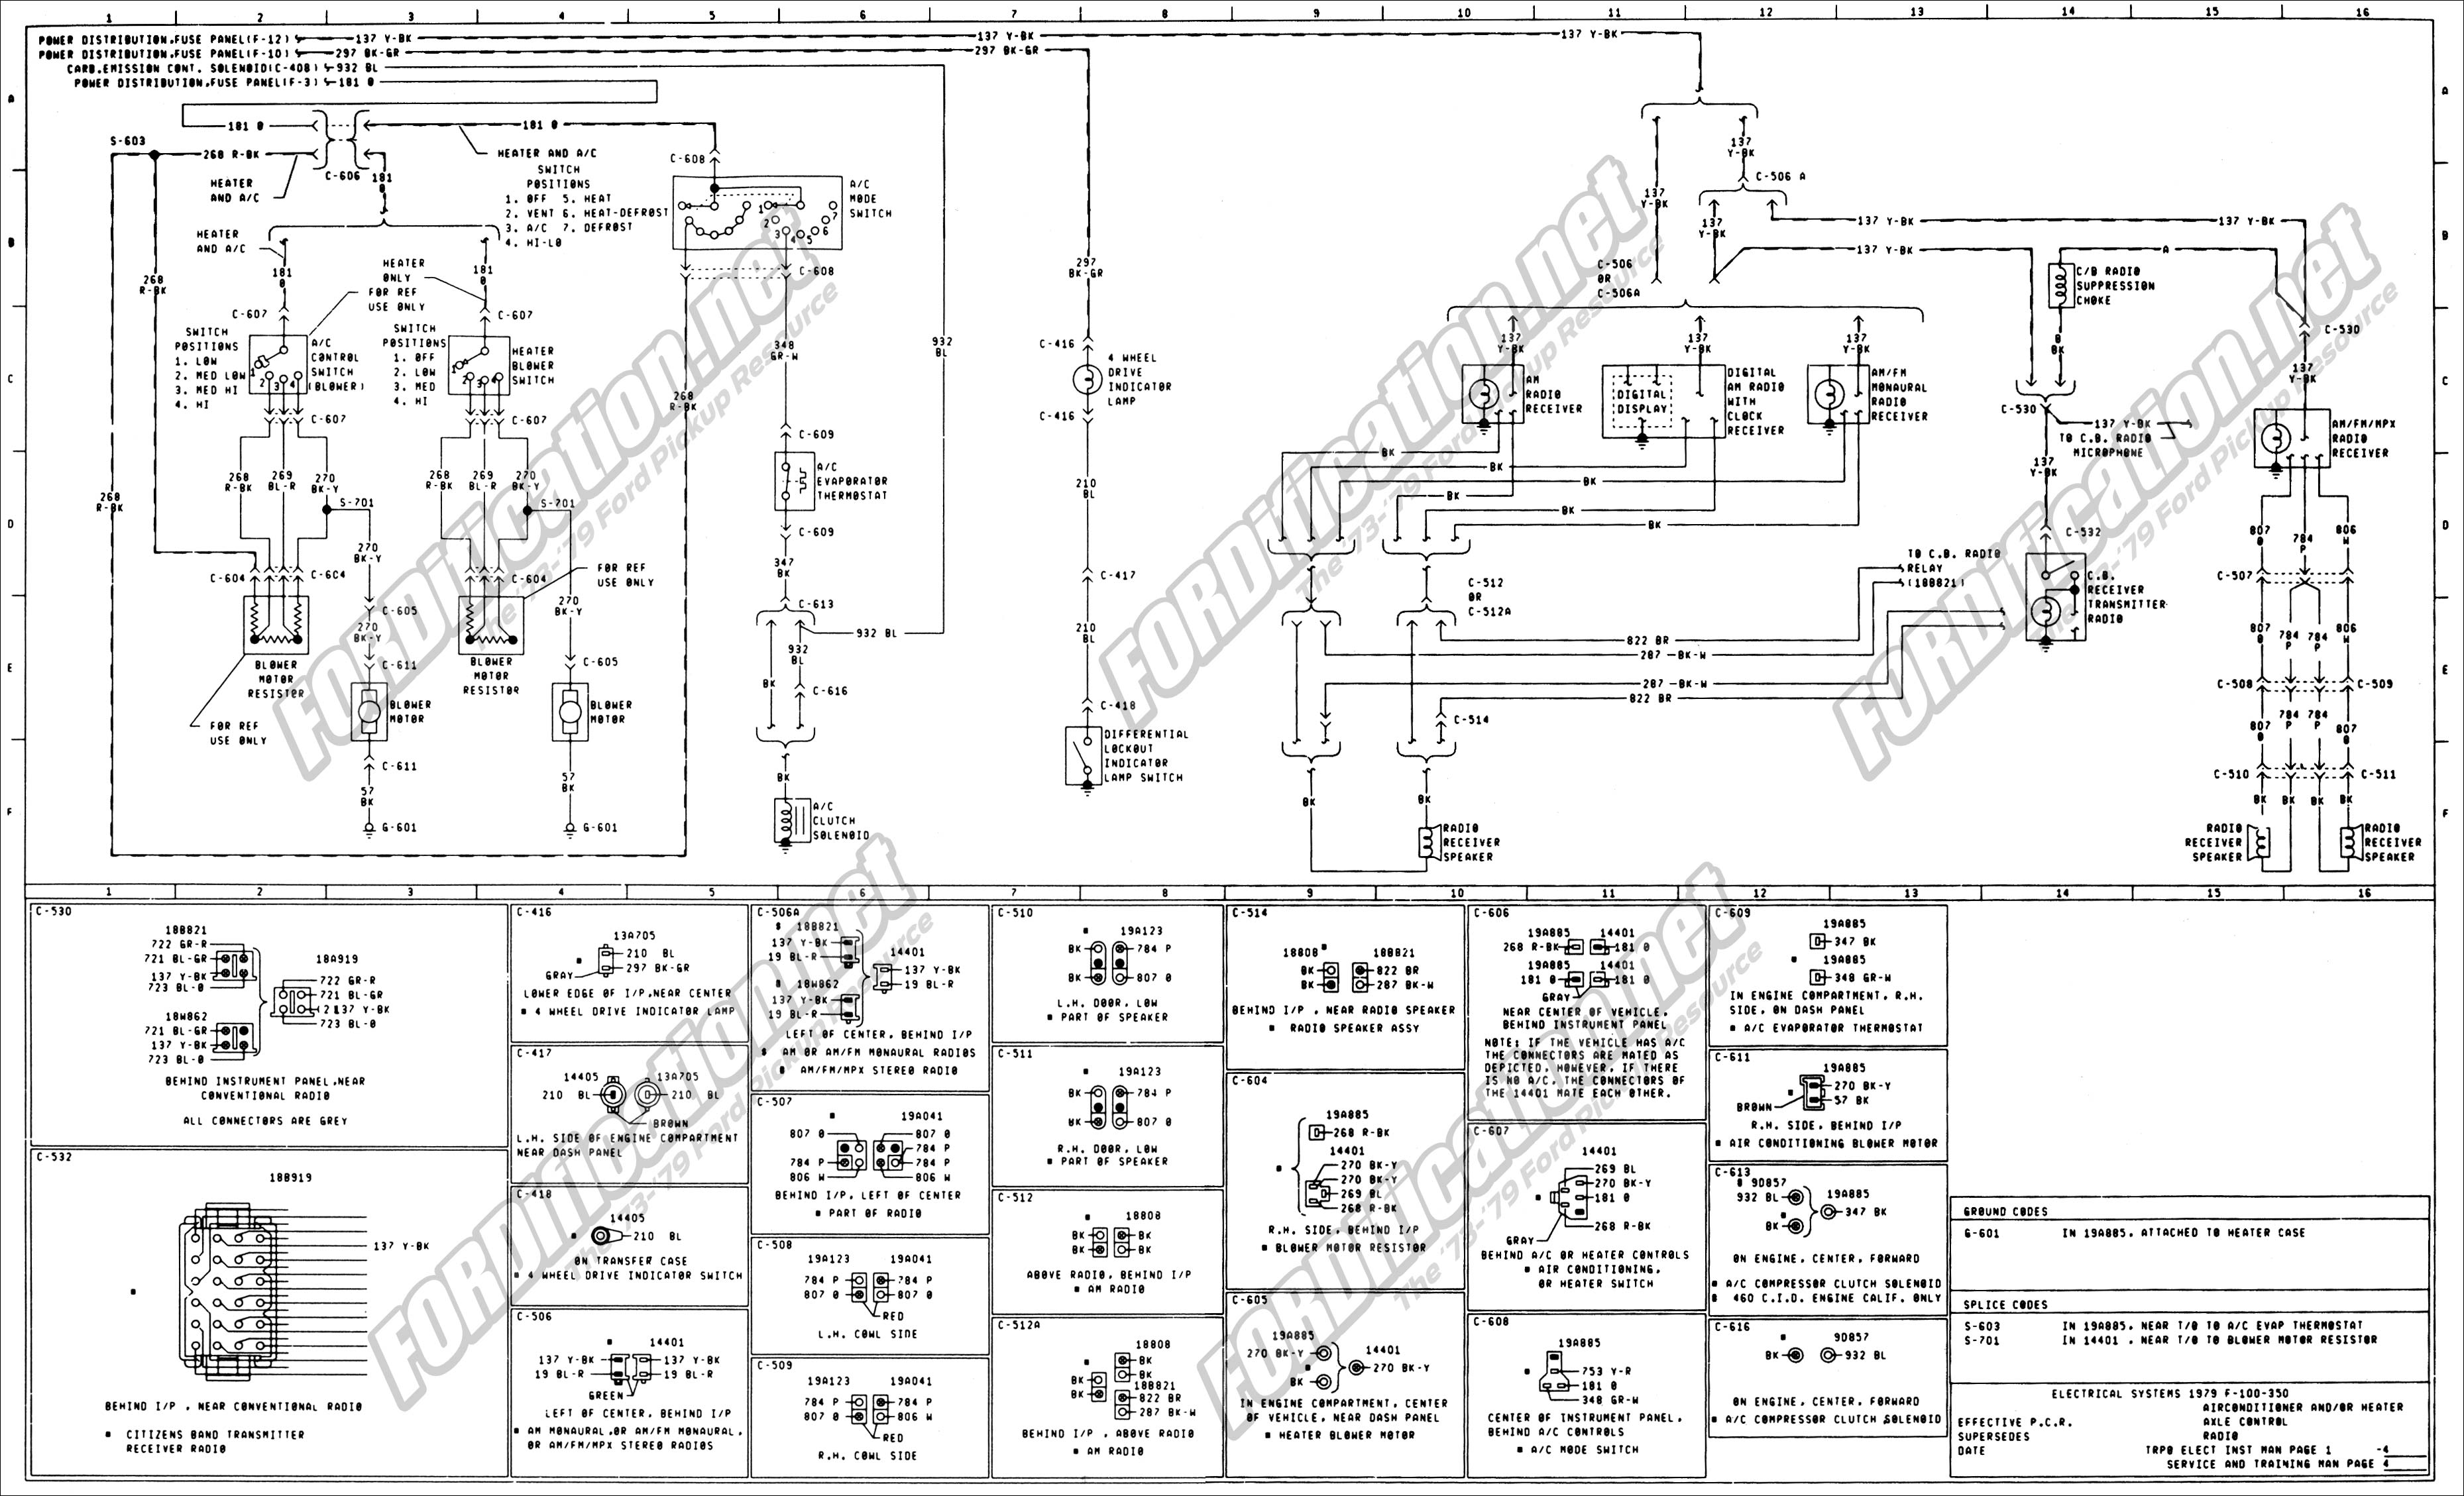 wiring_79master_4of9 1973 1979 ford truck wiring diagrams & schematics fordification net 1979 ford f100 fuse box diagram at creativeand.co